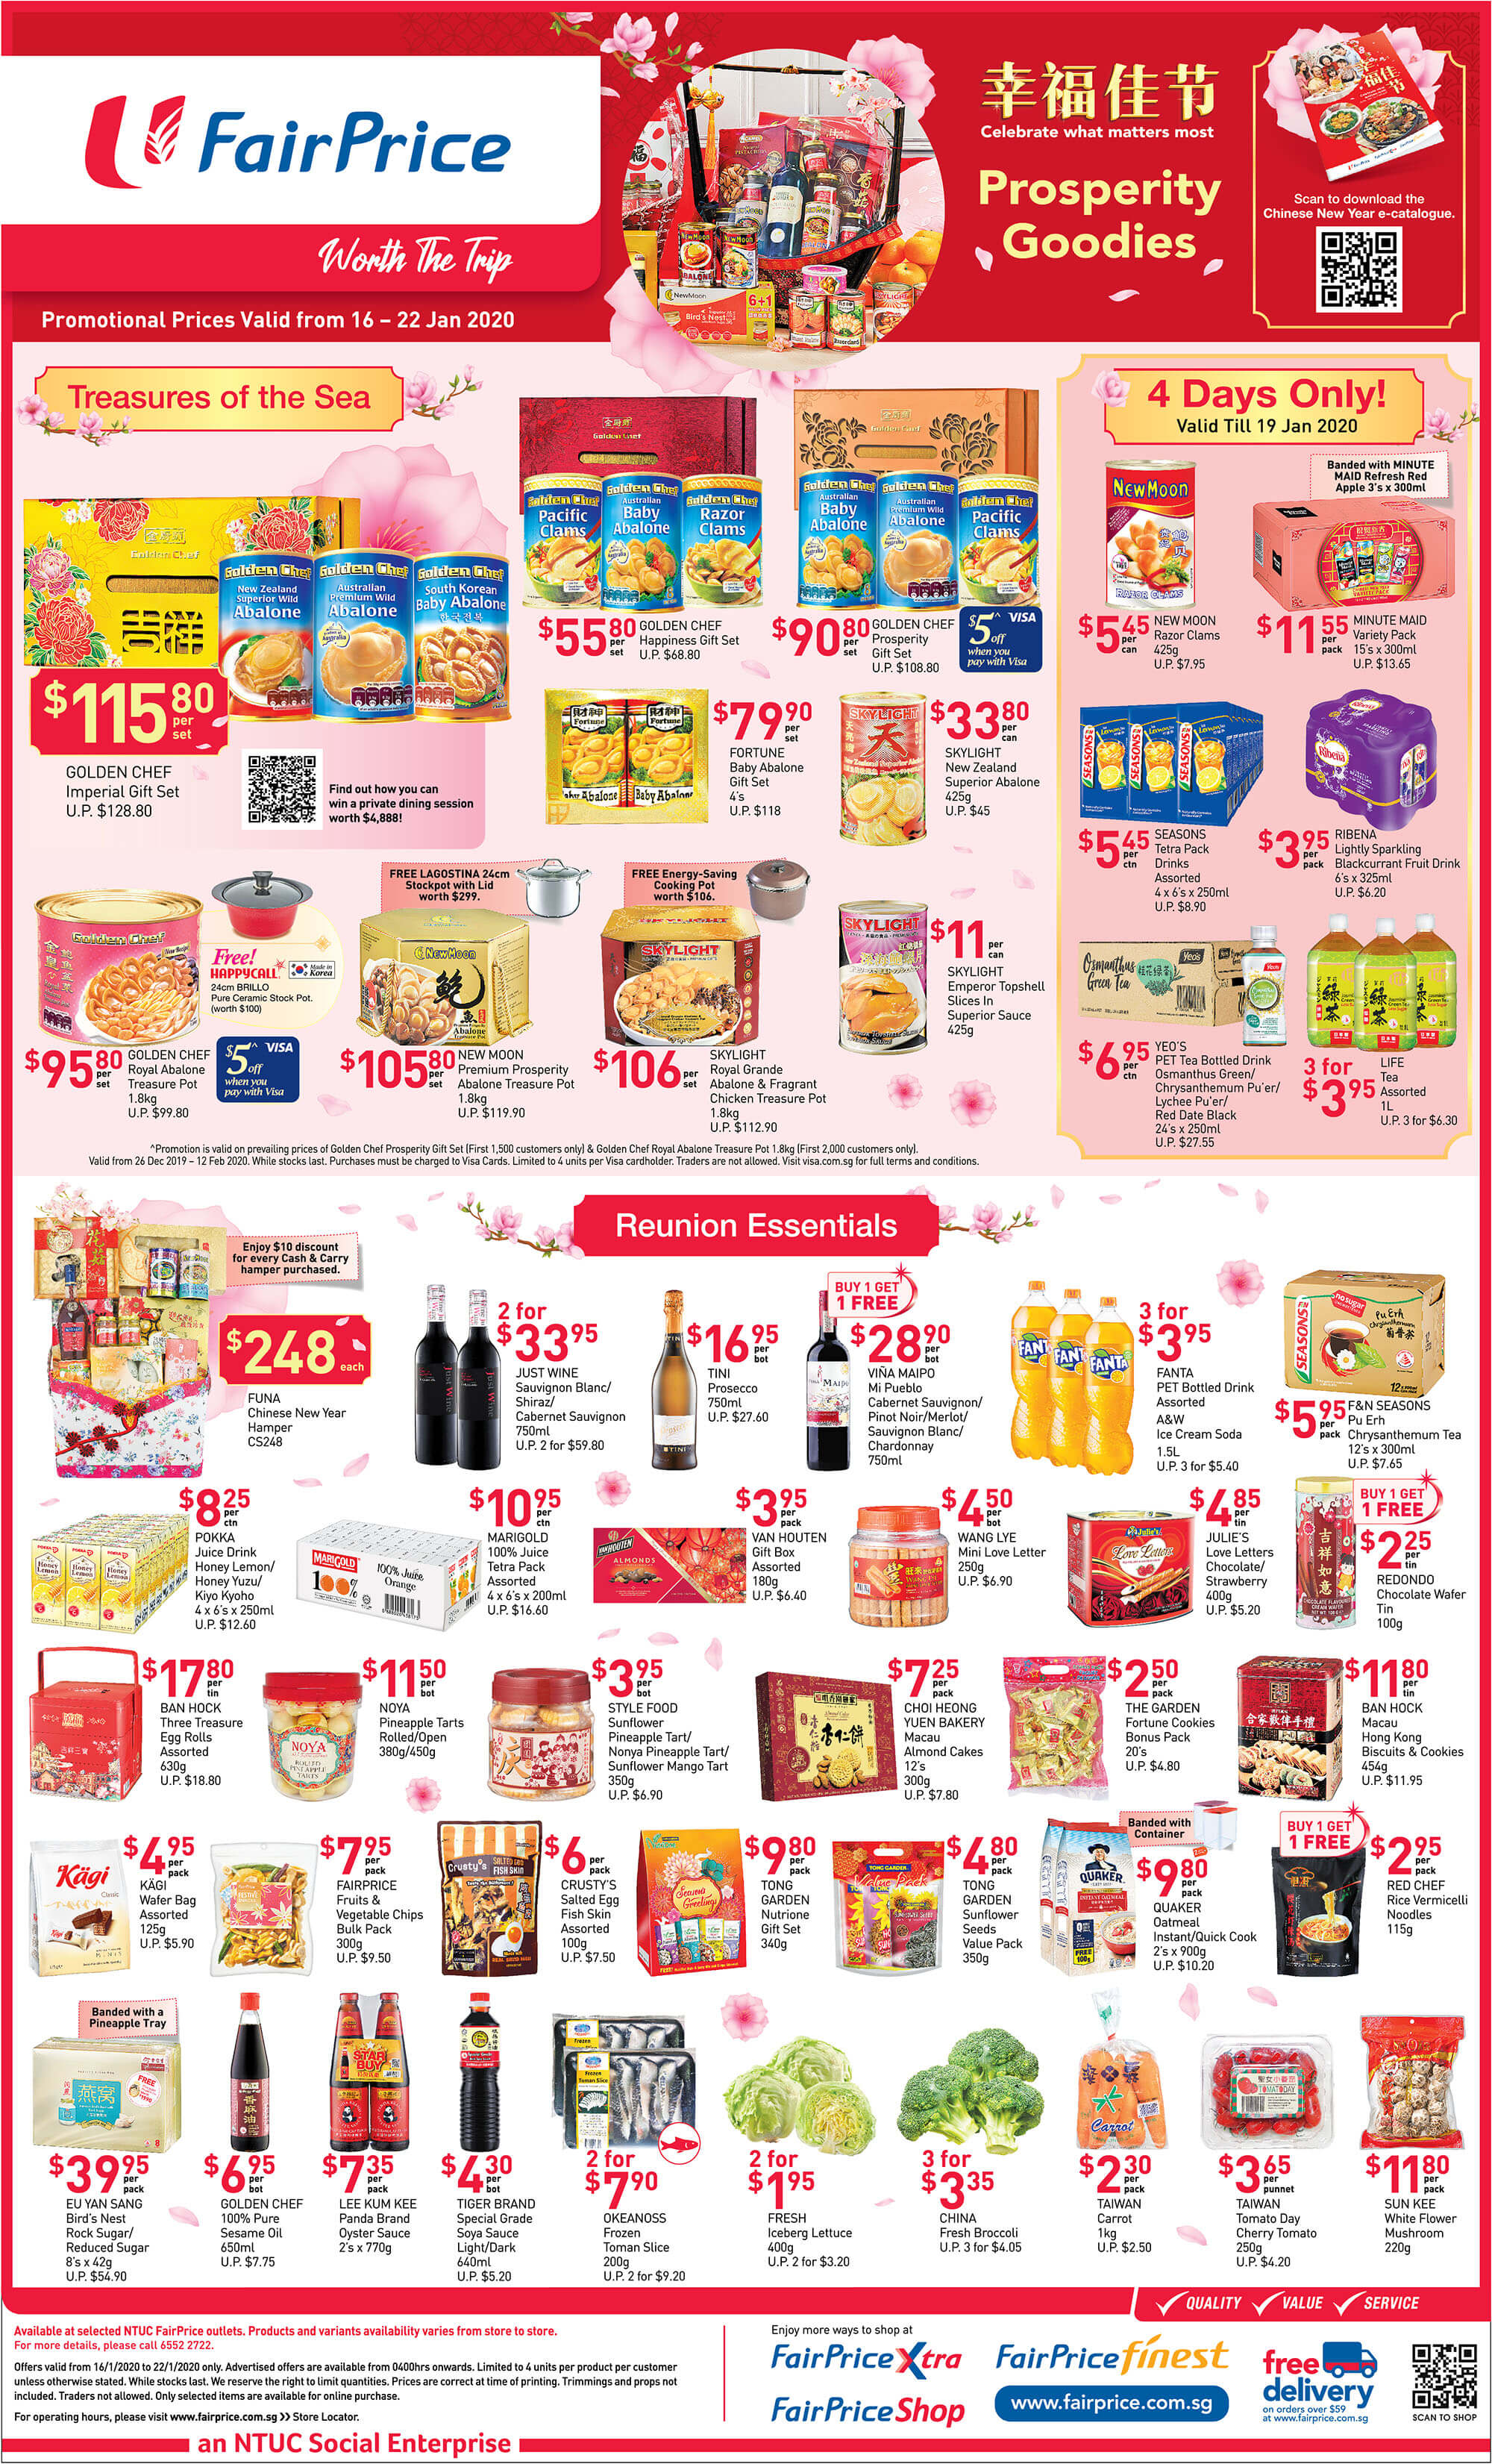 NTUC FairPrice SG Your Weekly Saver Promotion 16-22 Jan 2020 | Why Not Deals 1 & Promotions